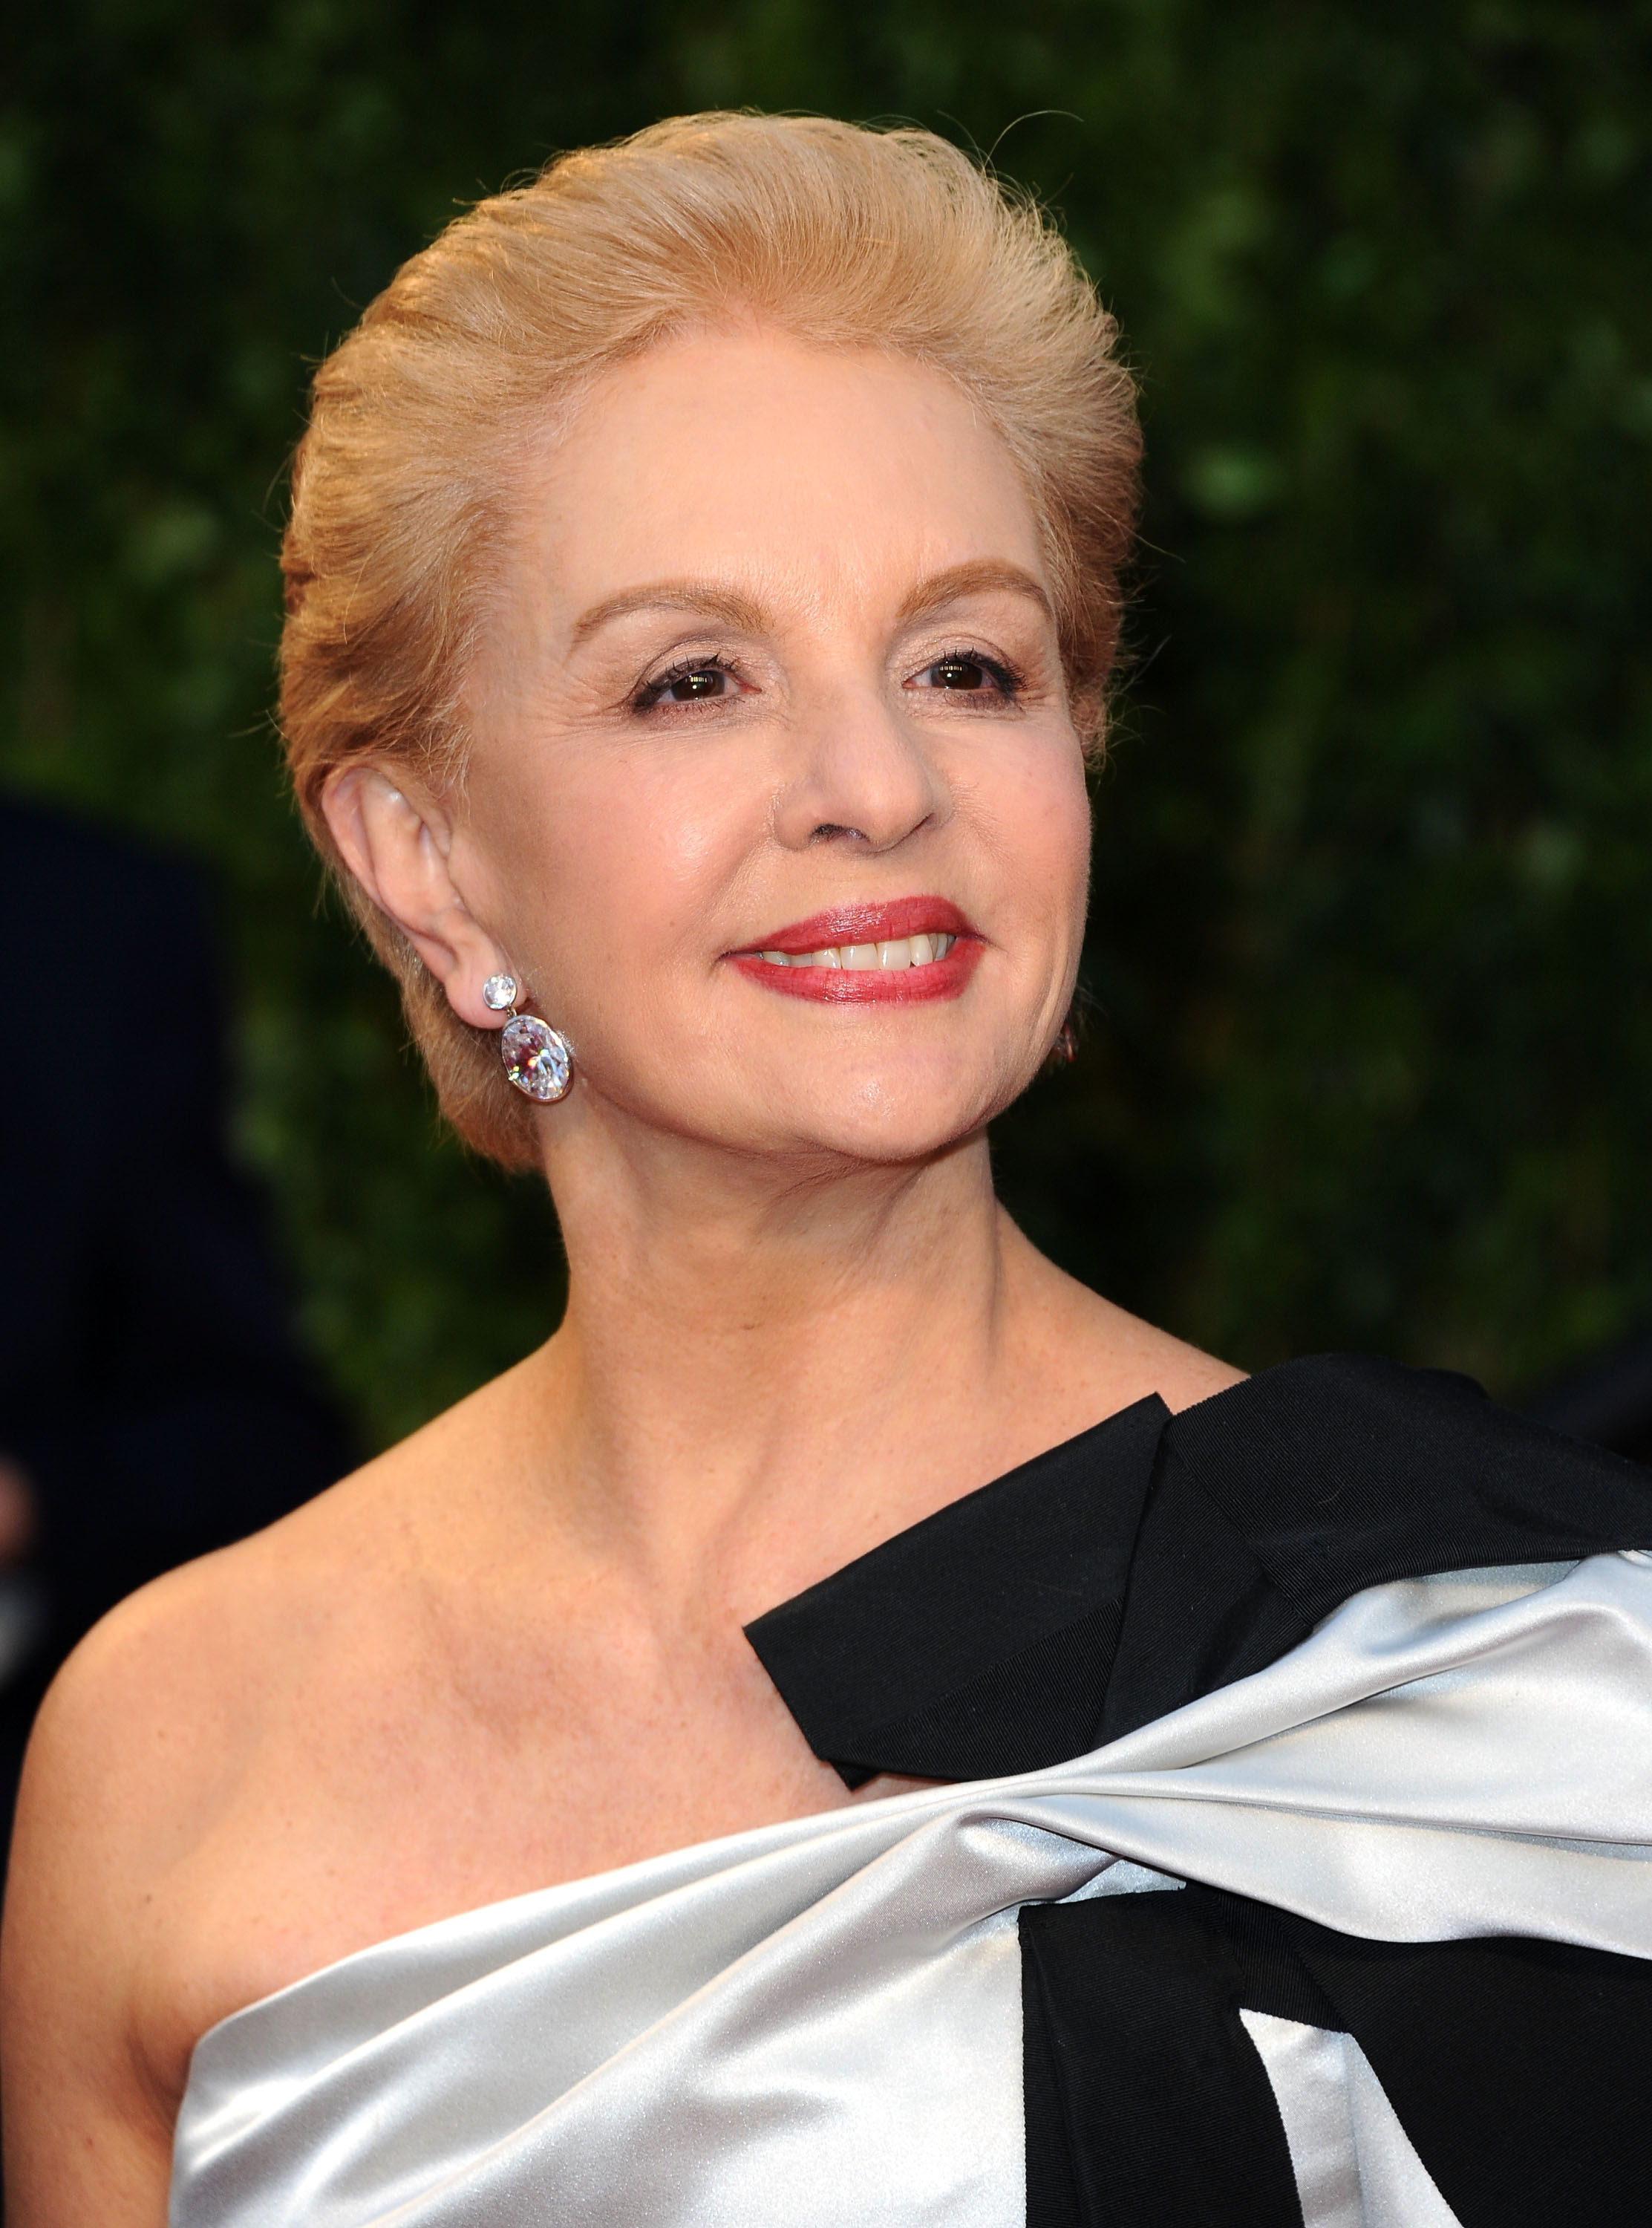 Carolina Herrera: 'An Honor' To Dress Future First Lady ...